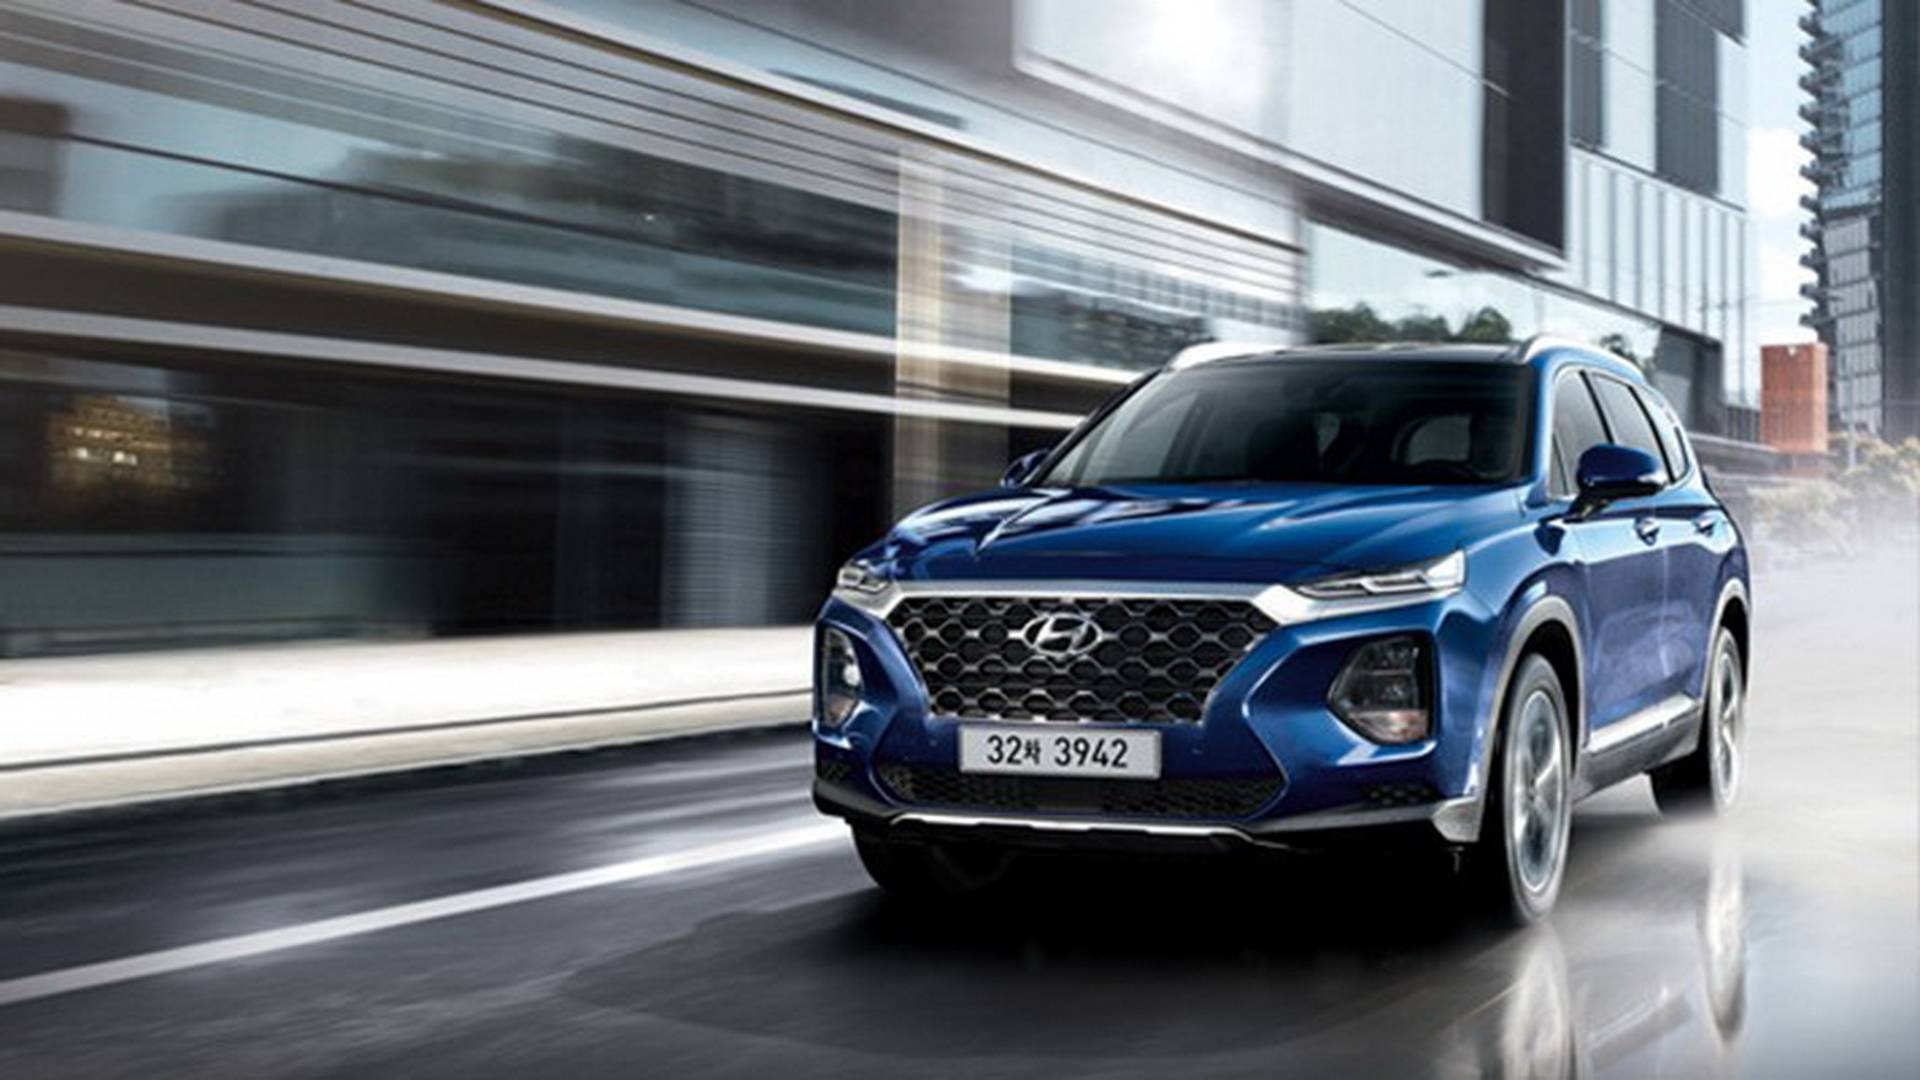 2019 Hyundai Santa Fe N Rendering Is Too Good To Be True - autoevolution